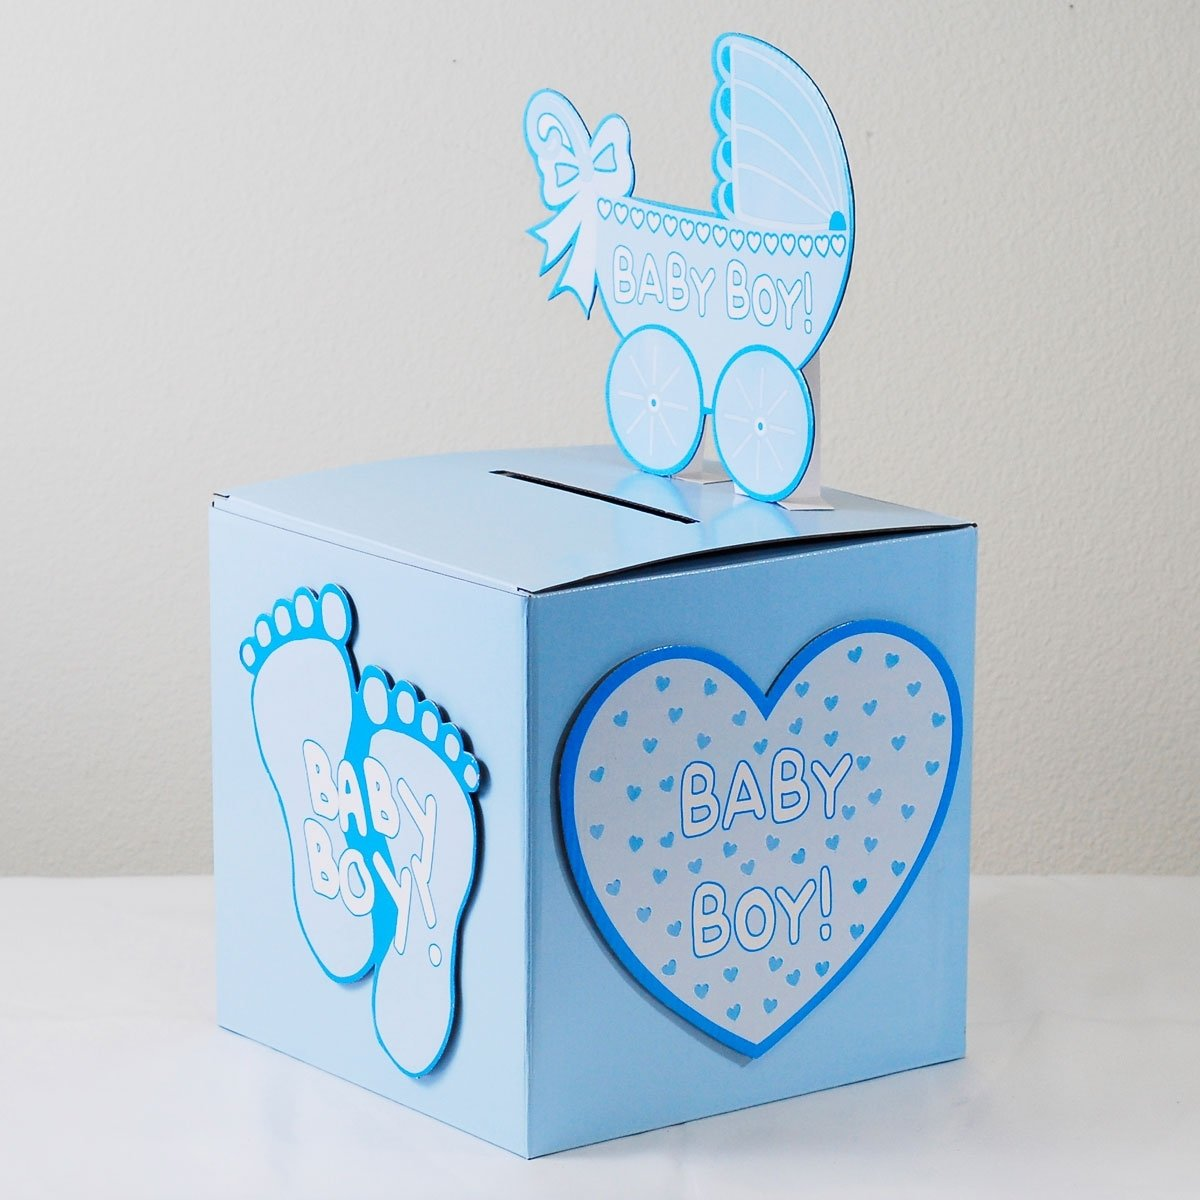 10 Fantastic Baby Shower Wishing Well Ideas baby shower gift card box ideas e280a2 baby showers ideas 2020